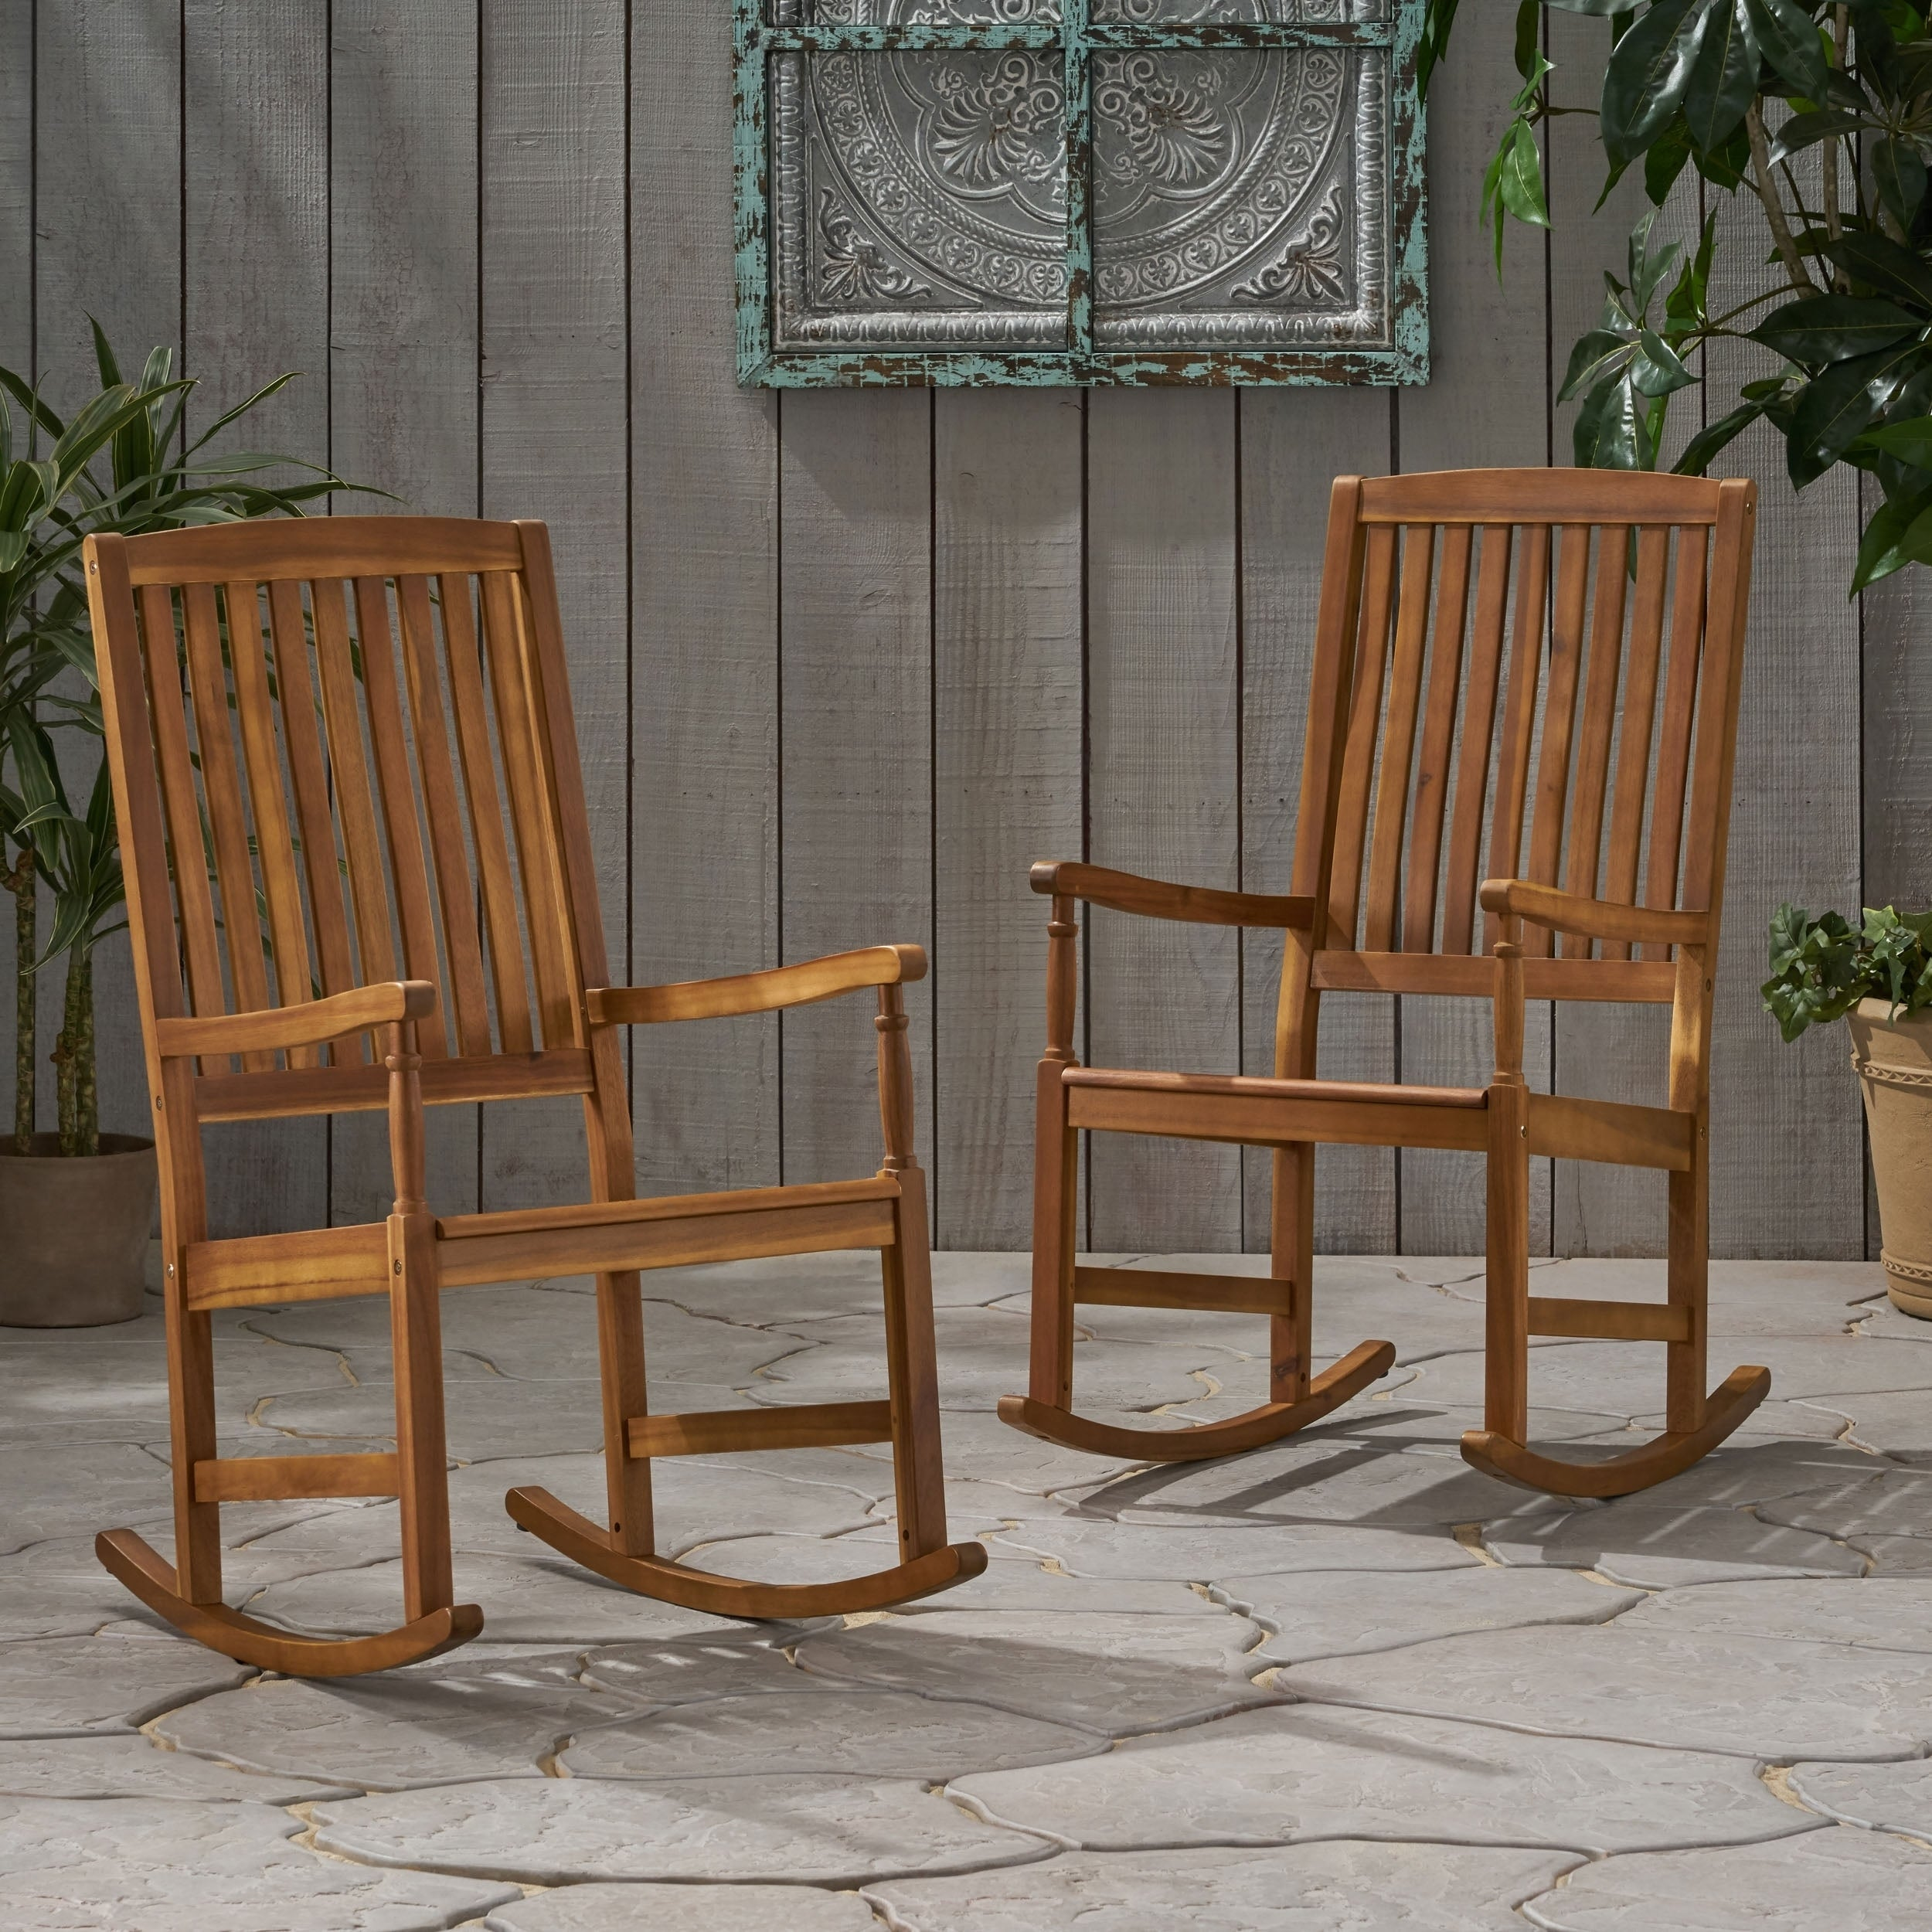 Arcadia Outdoor Acacia Wood Rocking Chairs Set Of 2 By Christopher Knight Home Overstock 28072870